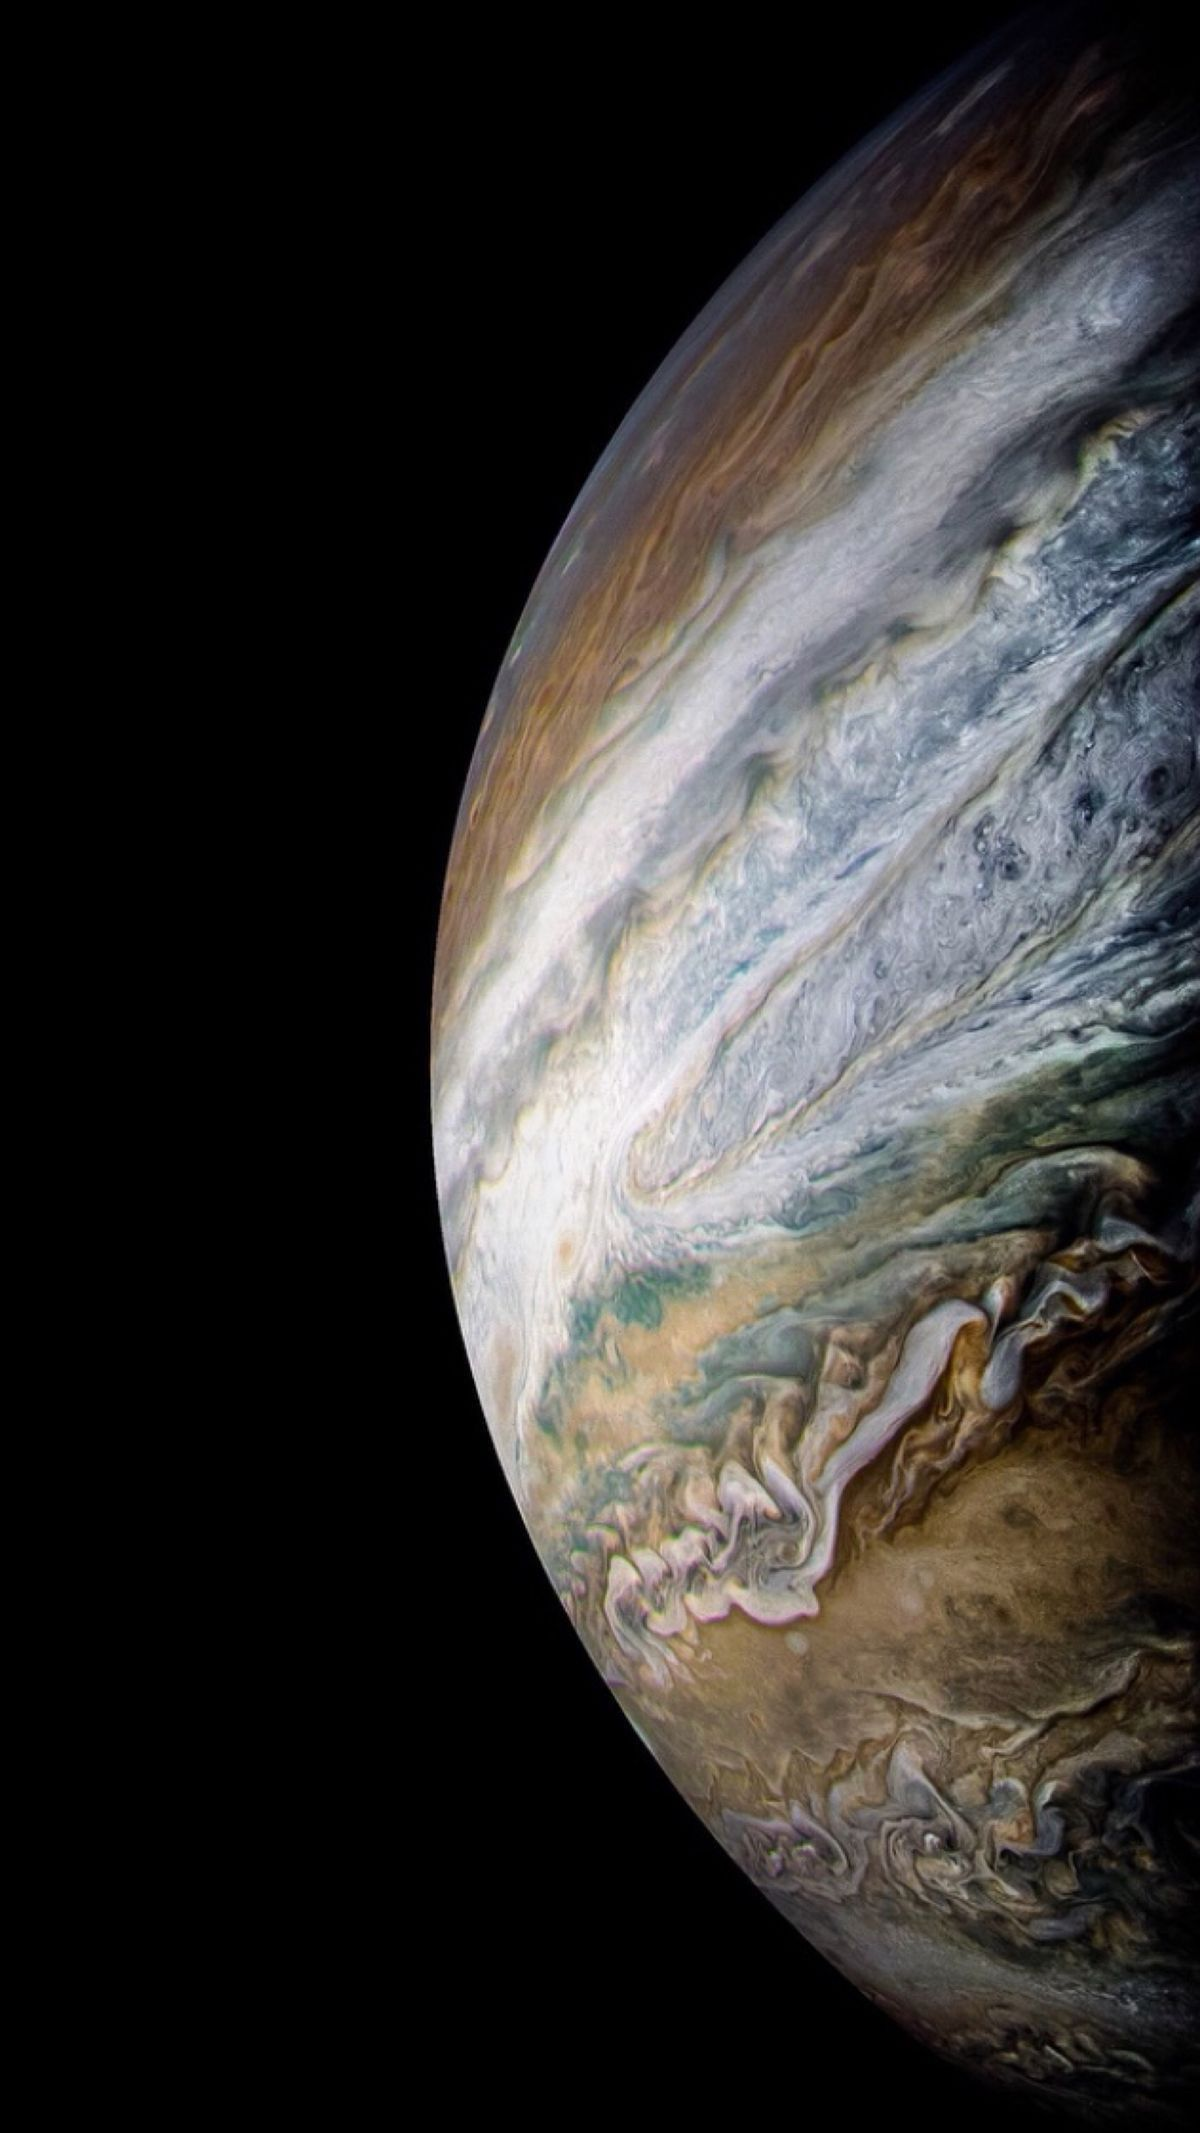 Jupiter Astronomy Photography Hubble Space Telescope Hubble Images